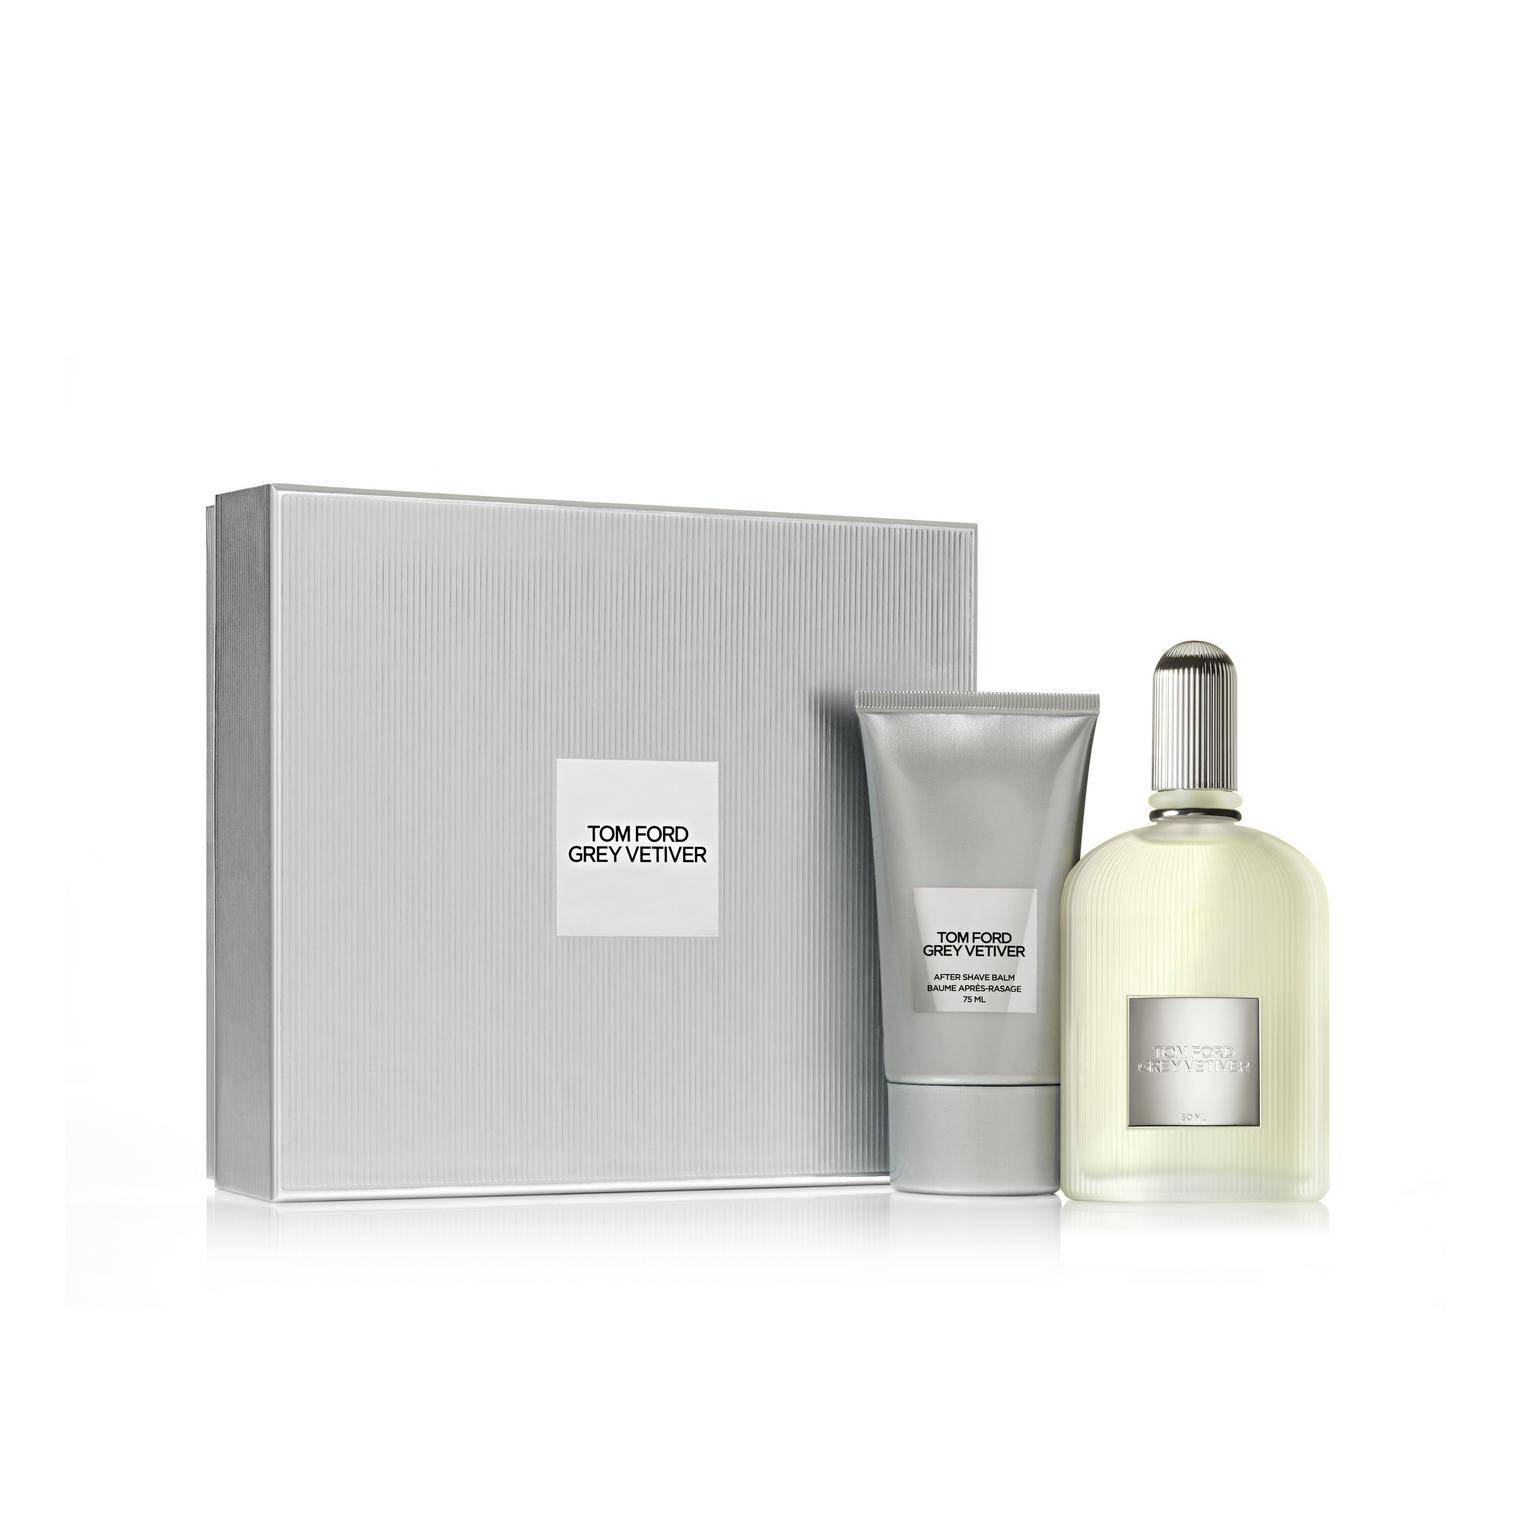 Tom Ford Cofanetto Grey Vetiver Edp 100ml + After Shave 75ml